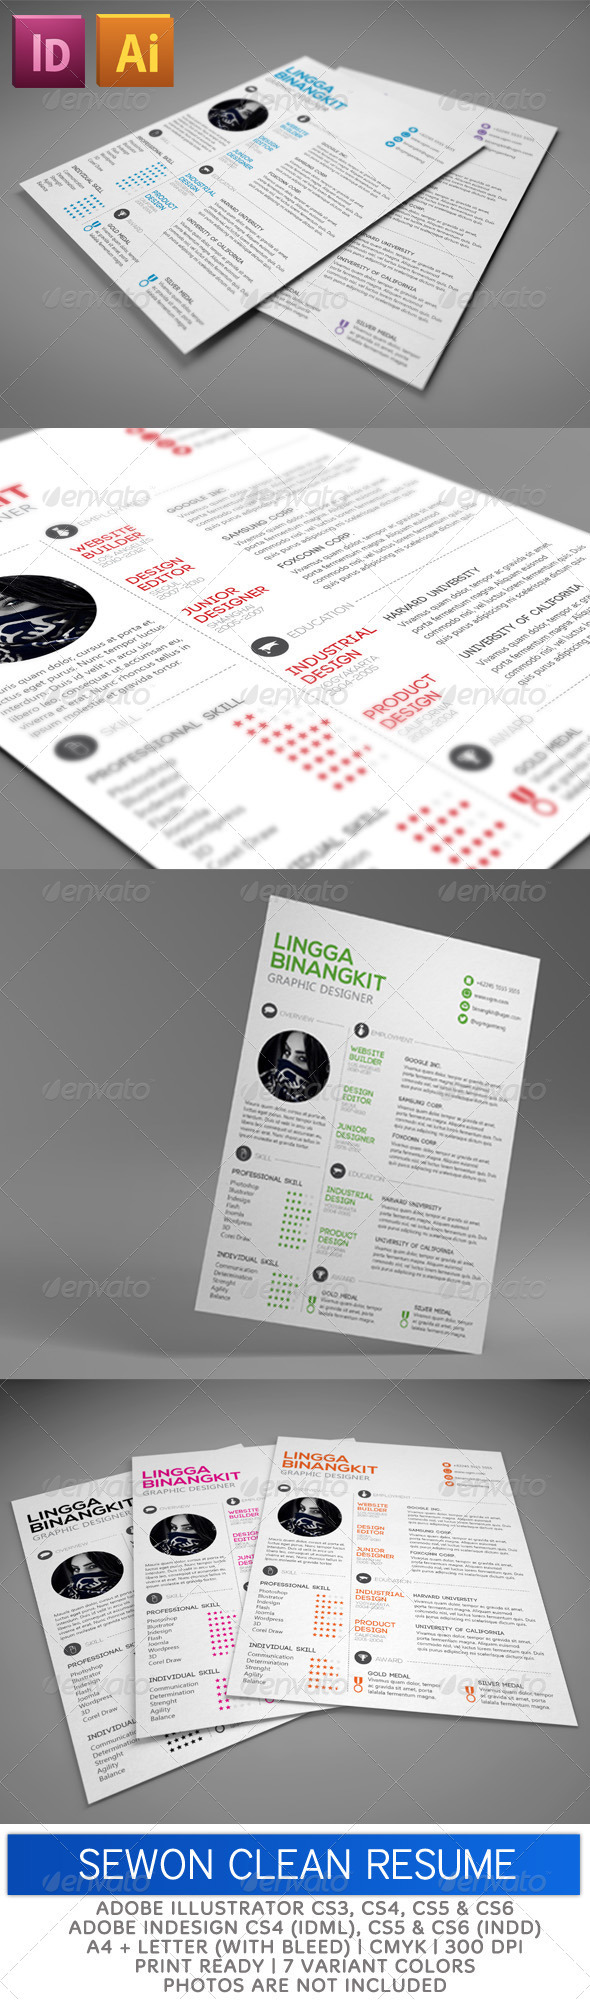 Sewon Clean Resume Template for InDesign | Resume | Pinterest ...